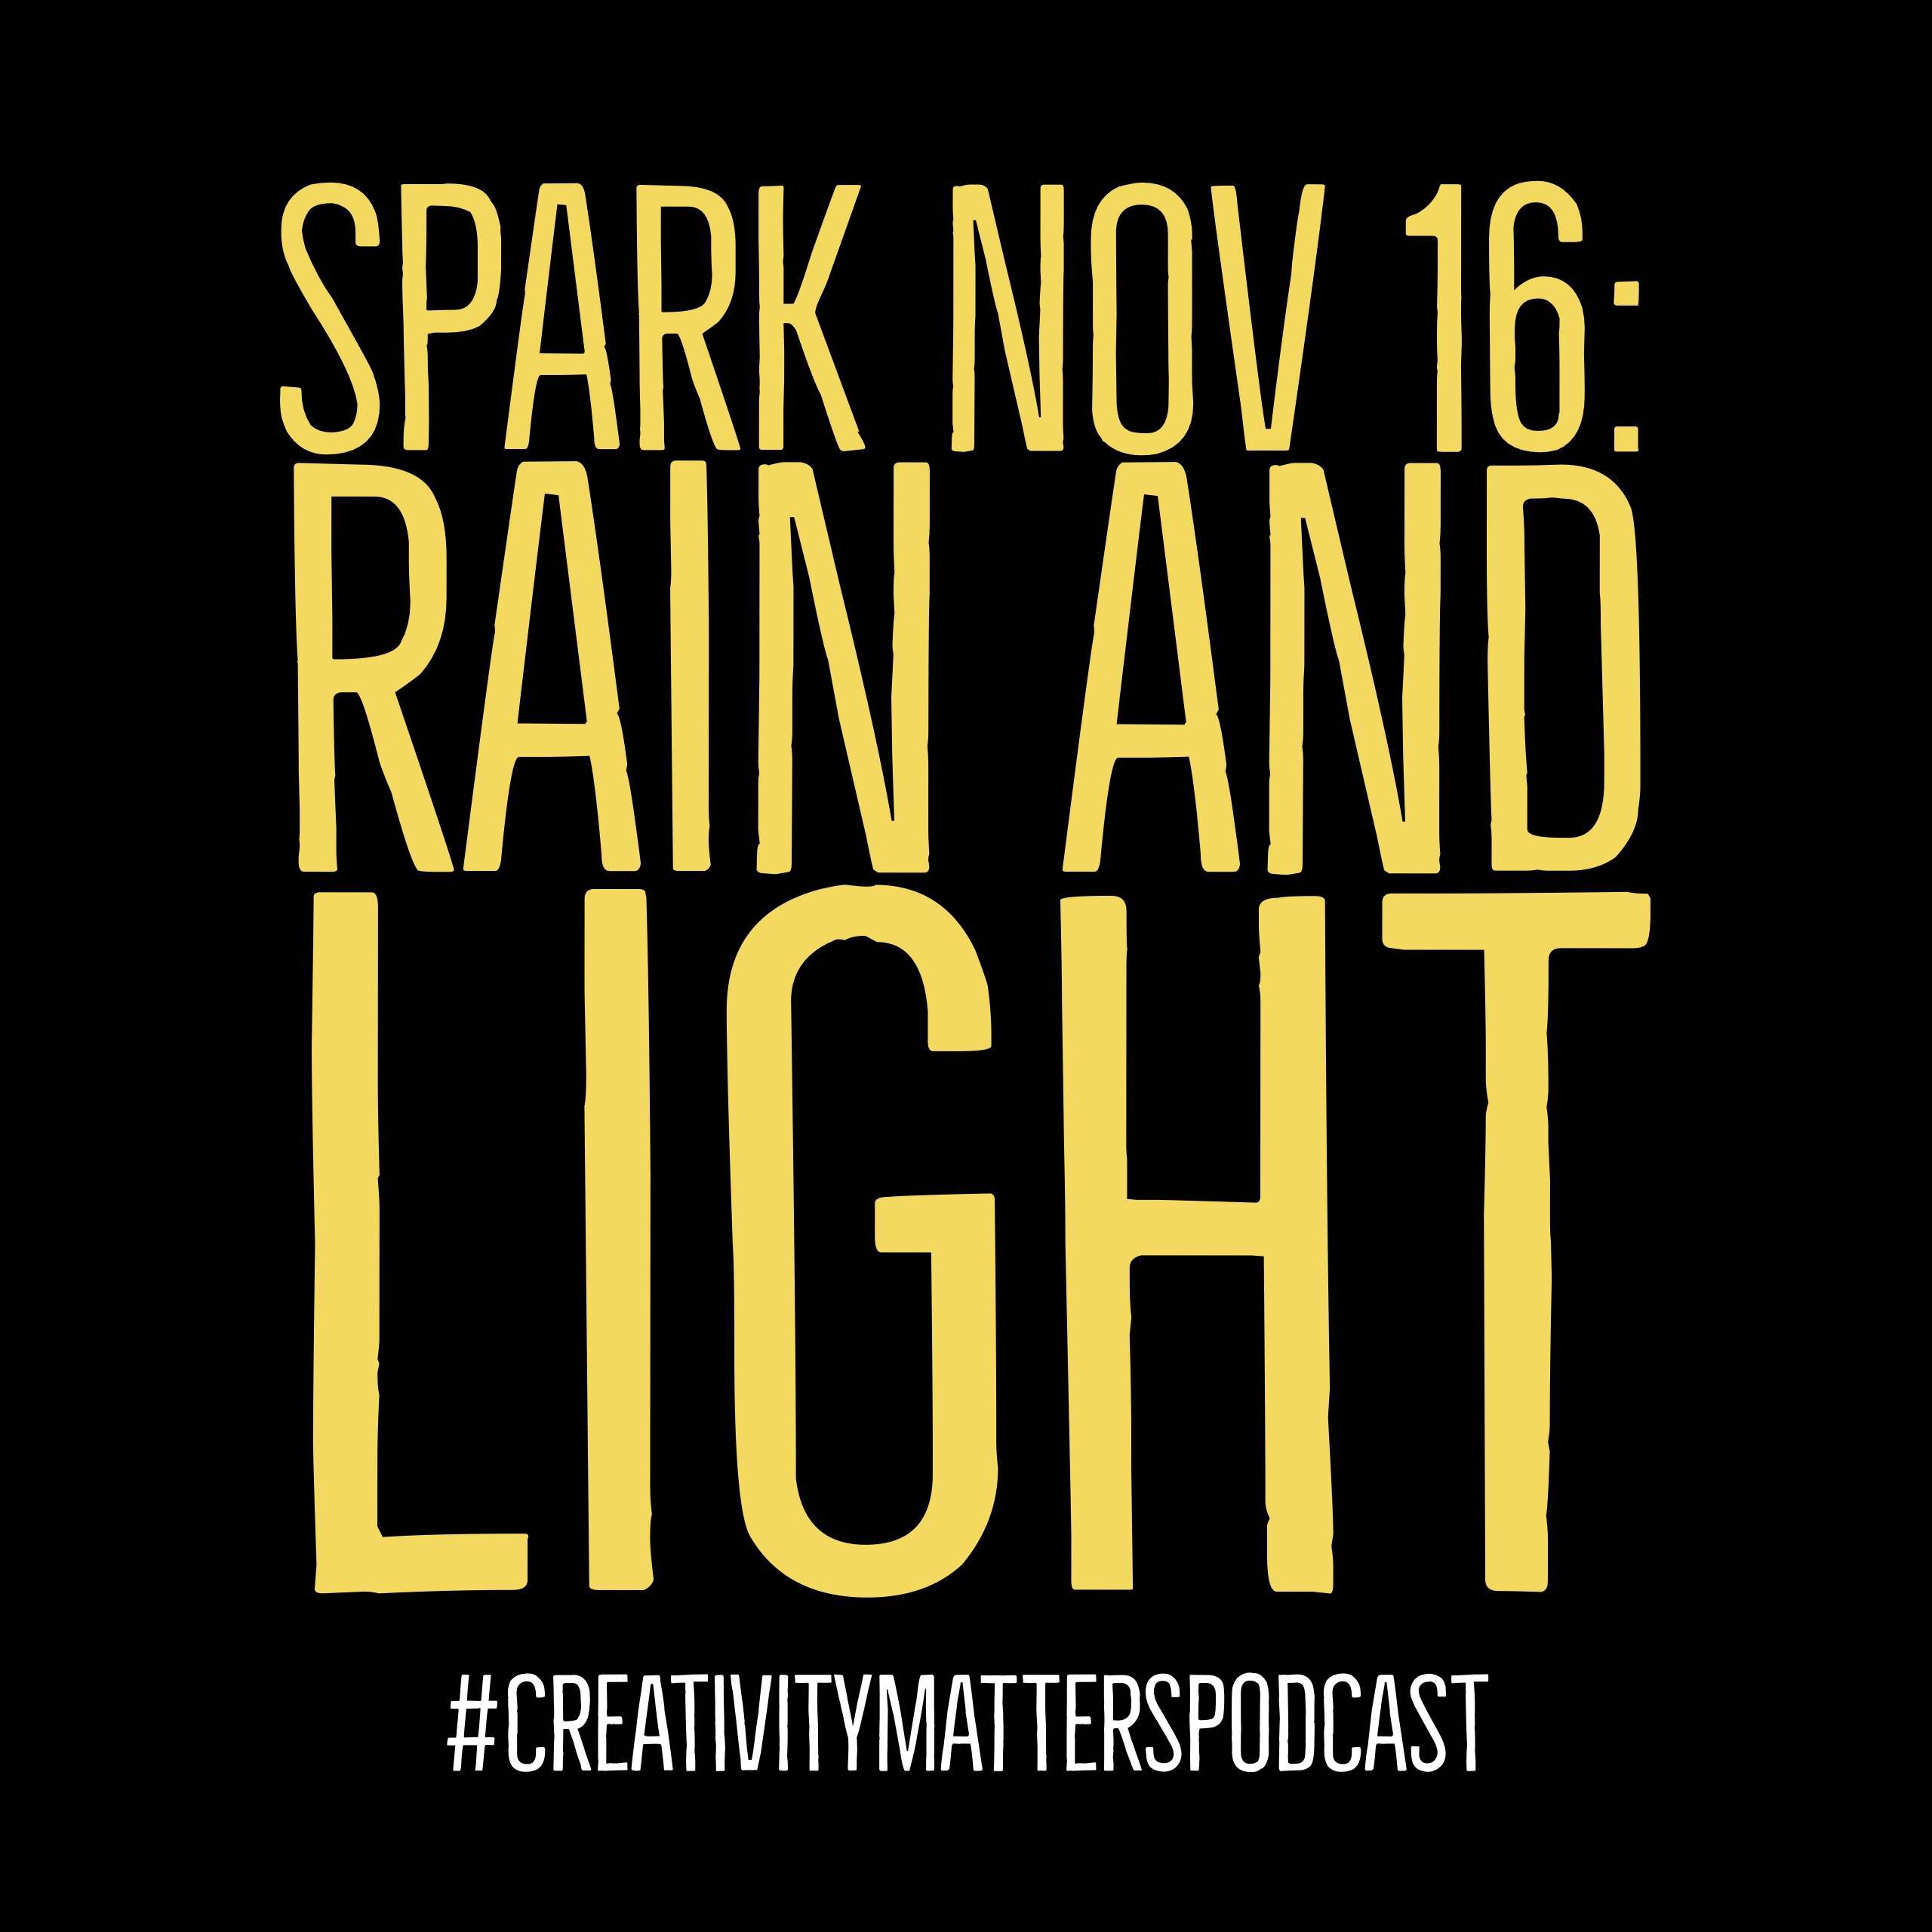 Spark Nov 16: Rain and Light